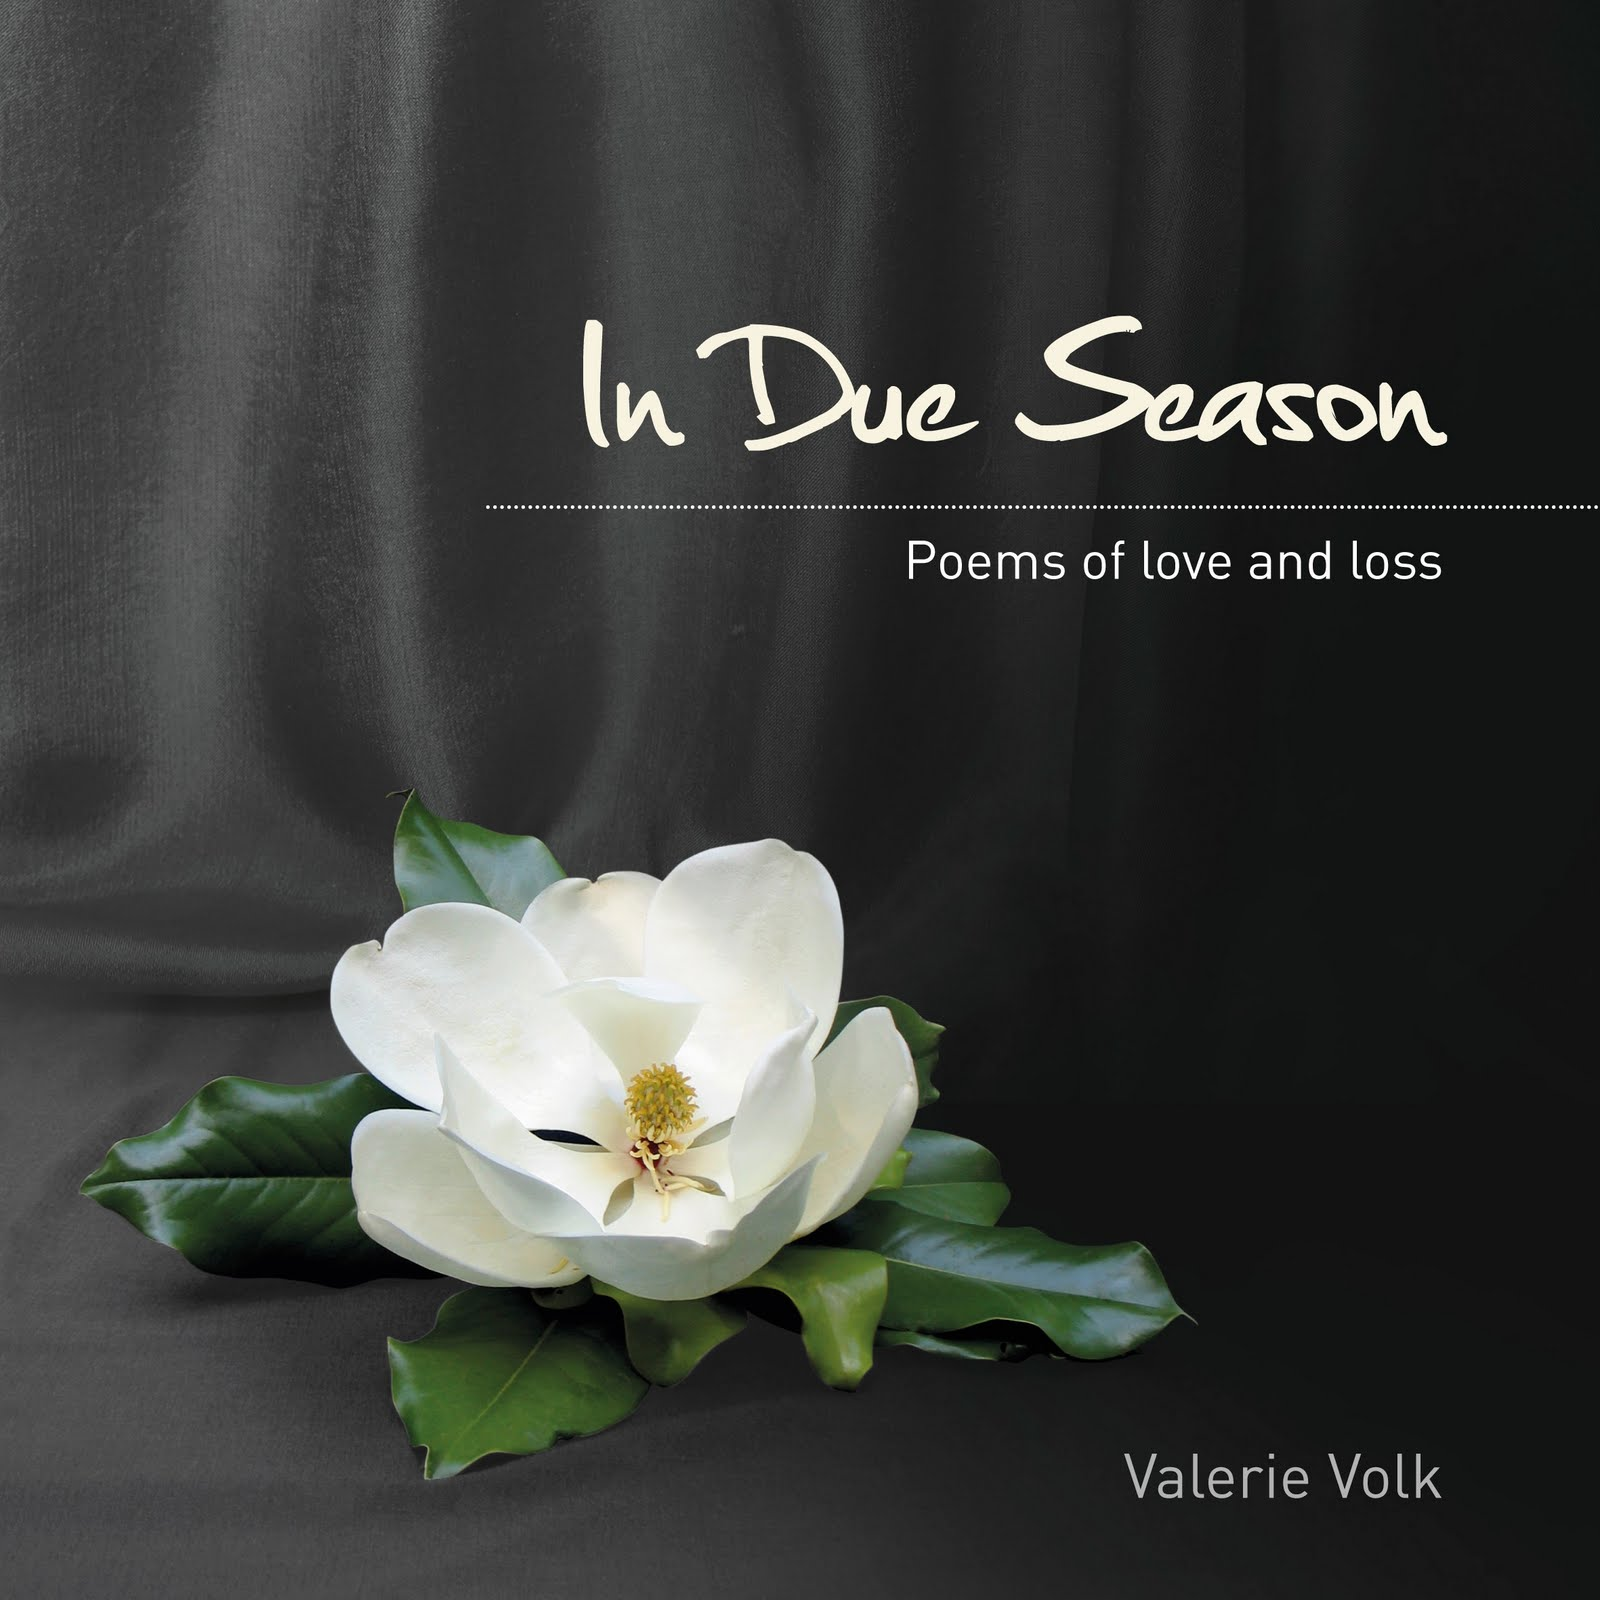 paul wilkes in due season essay Signatures of grace the wonders and mysteries of sacramental life are celebrated in this distinctive collection of essays by eight acclaimed catholic writers in signatures of --paul wilkes, author of in due season.